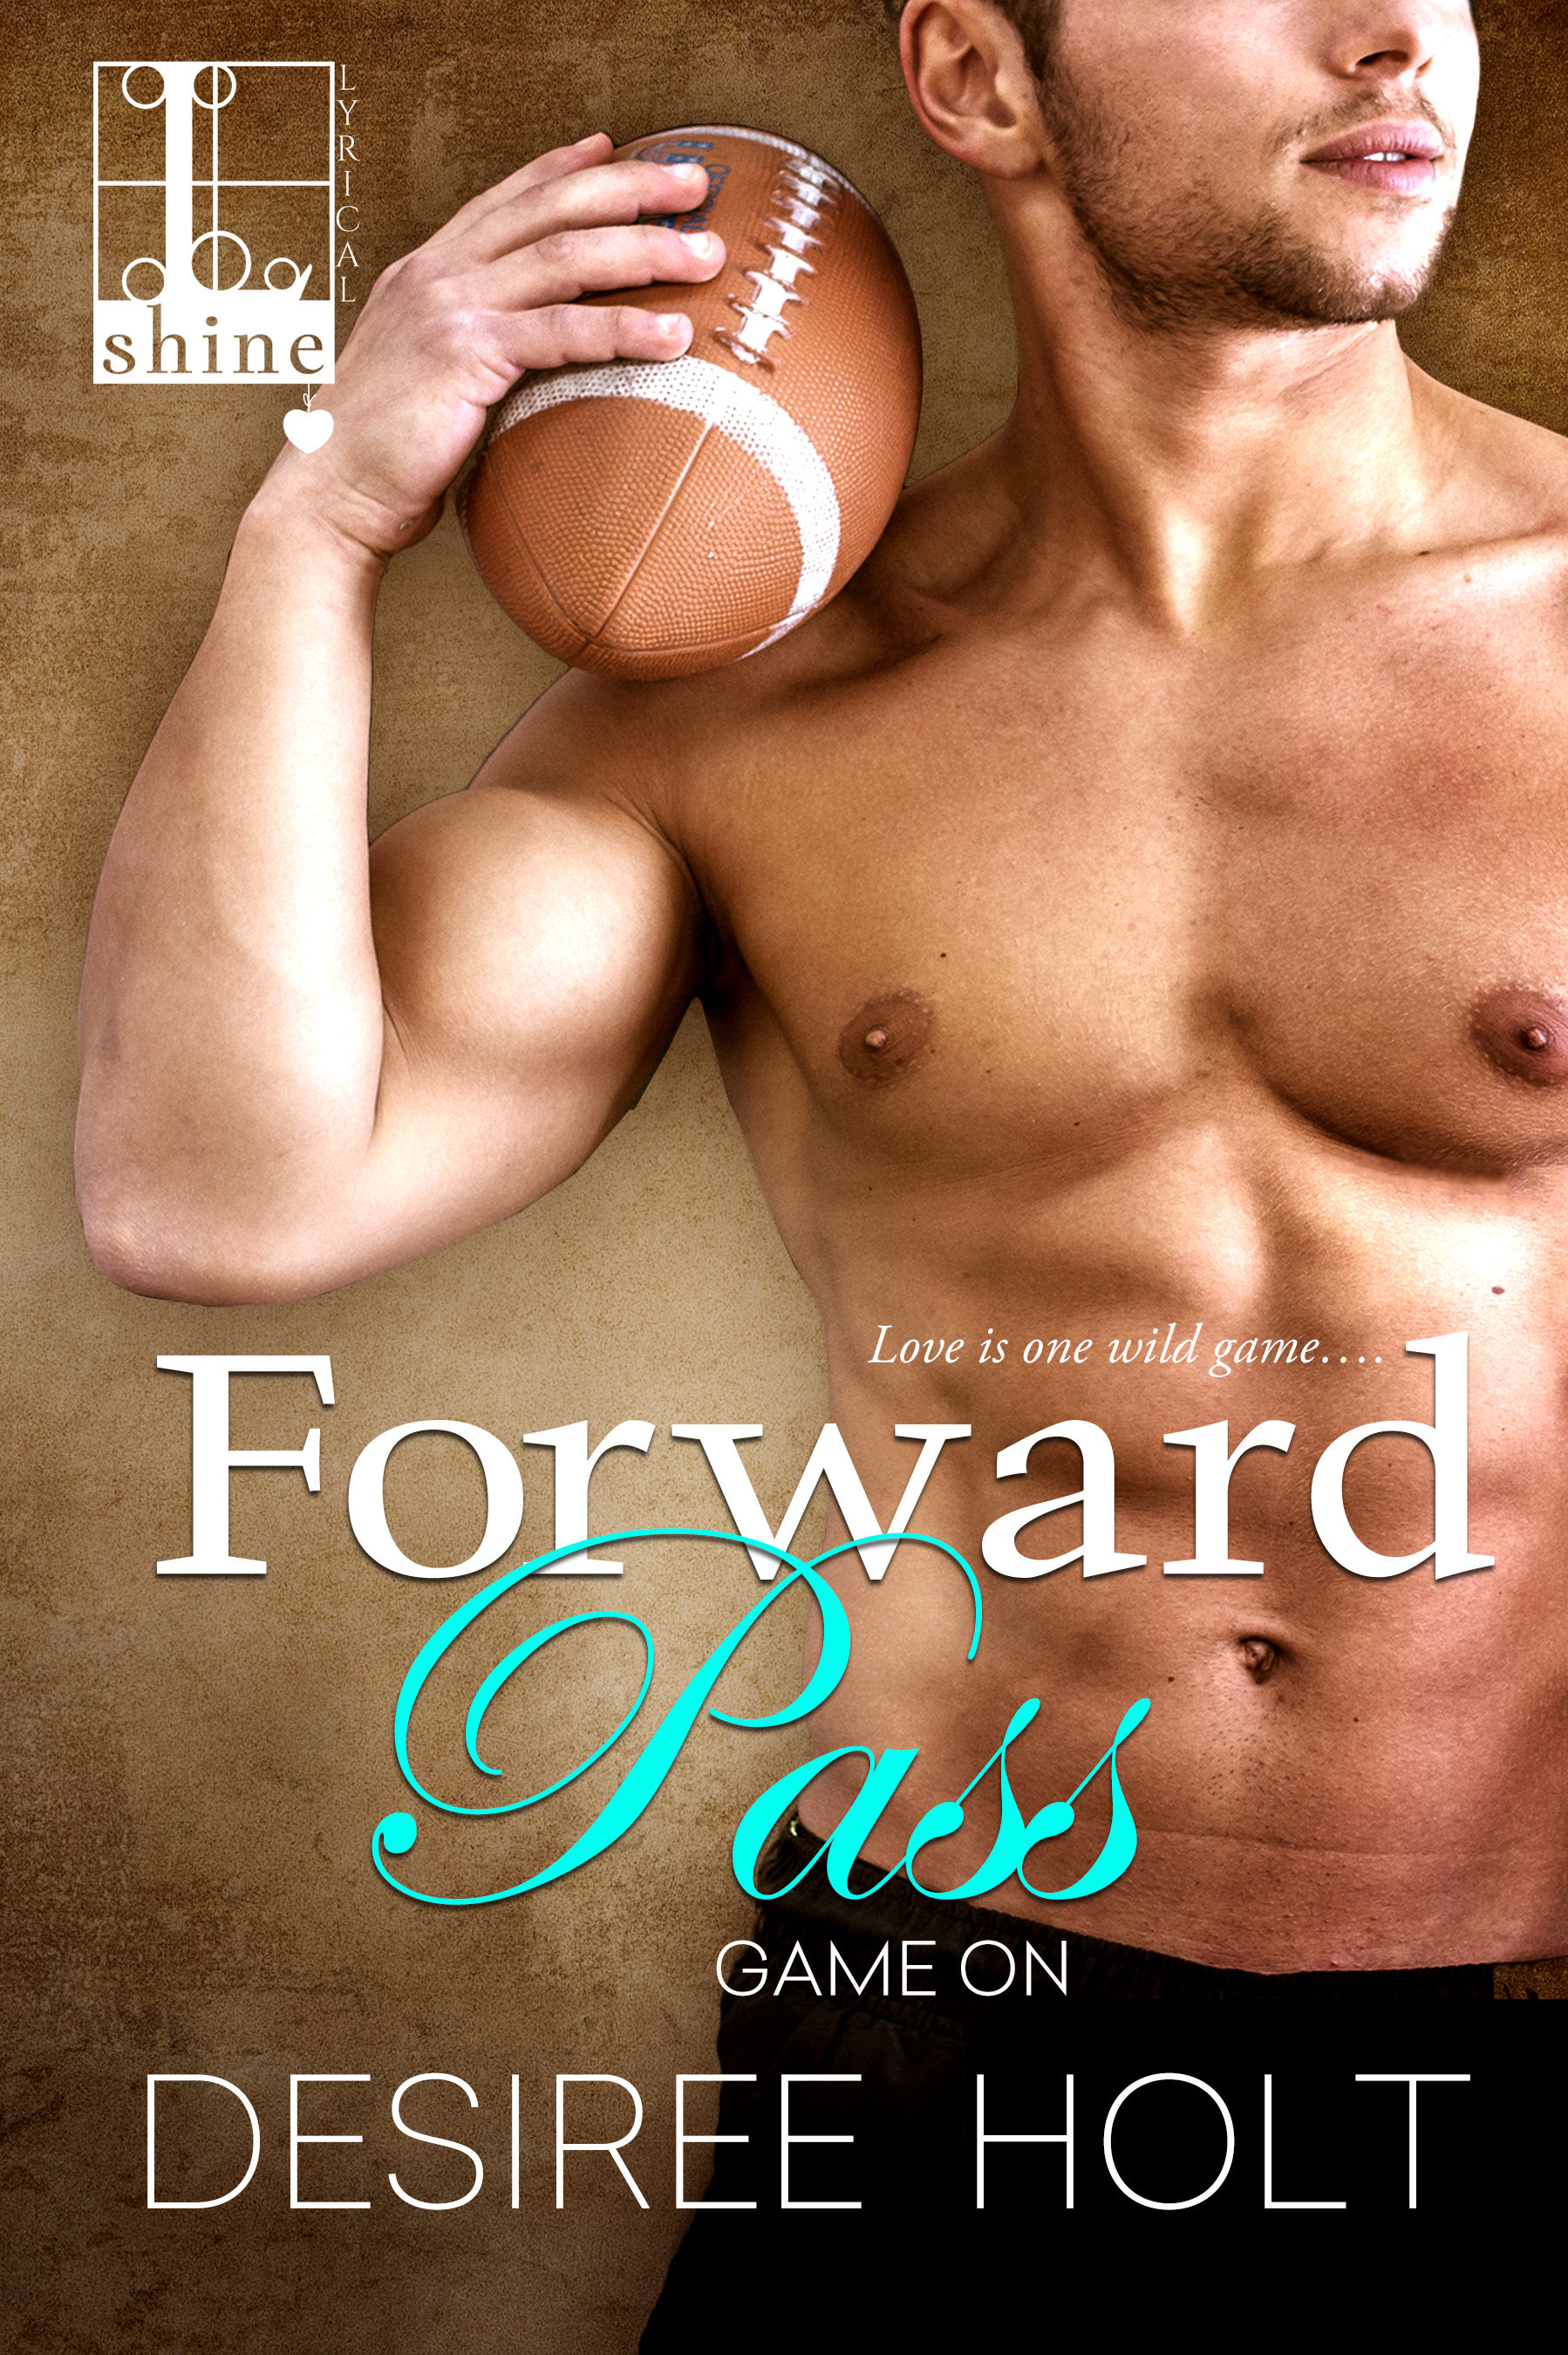 For one month-FORWARD PASS – 99cents!